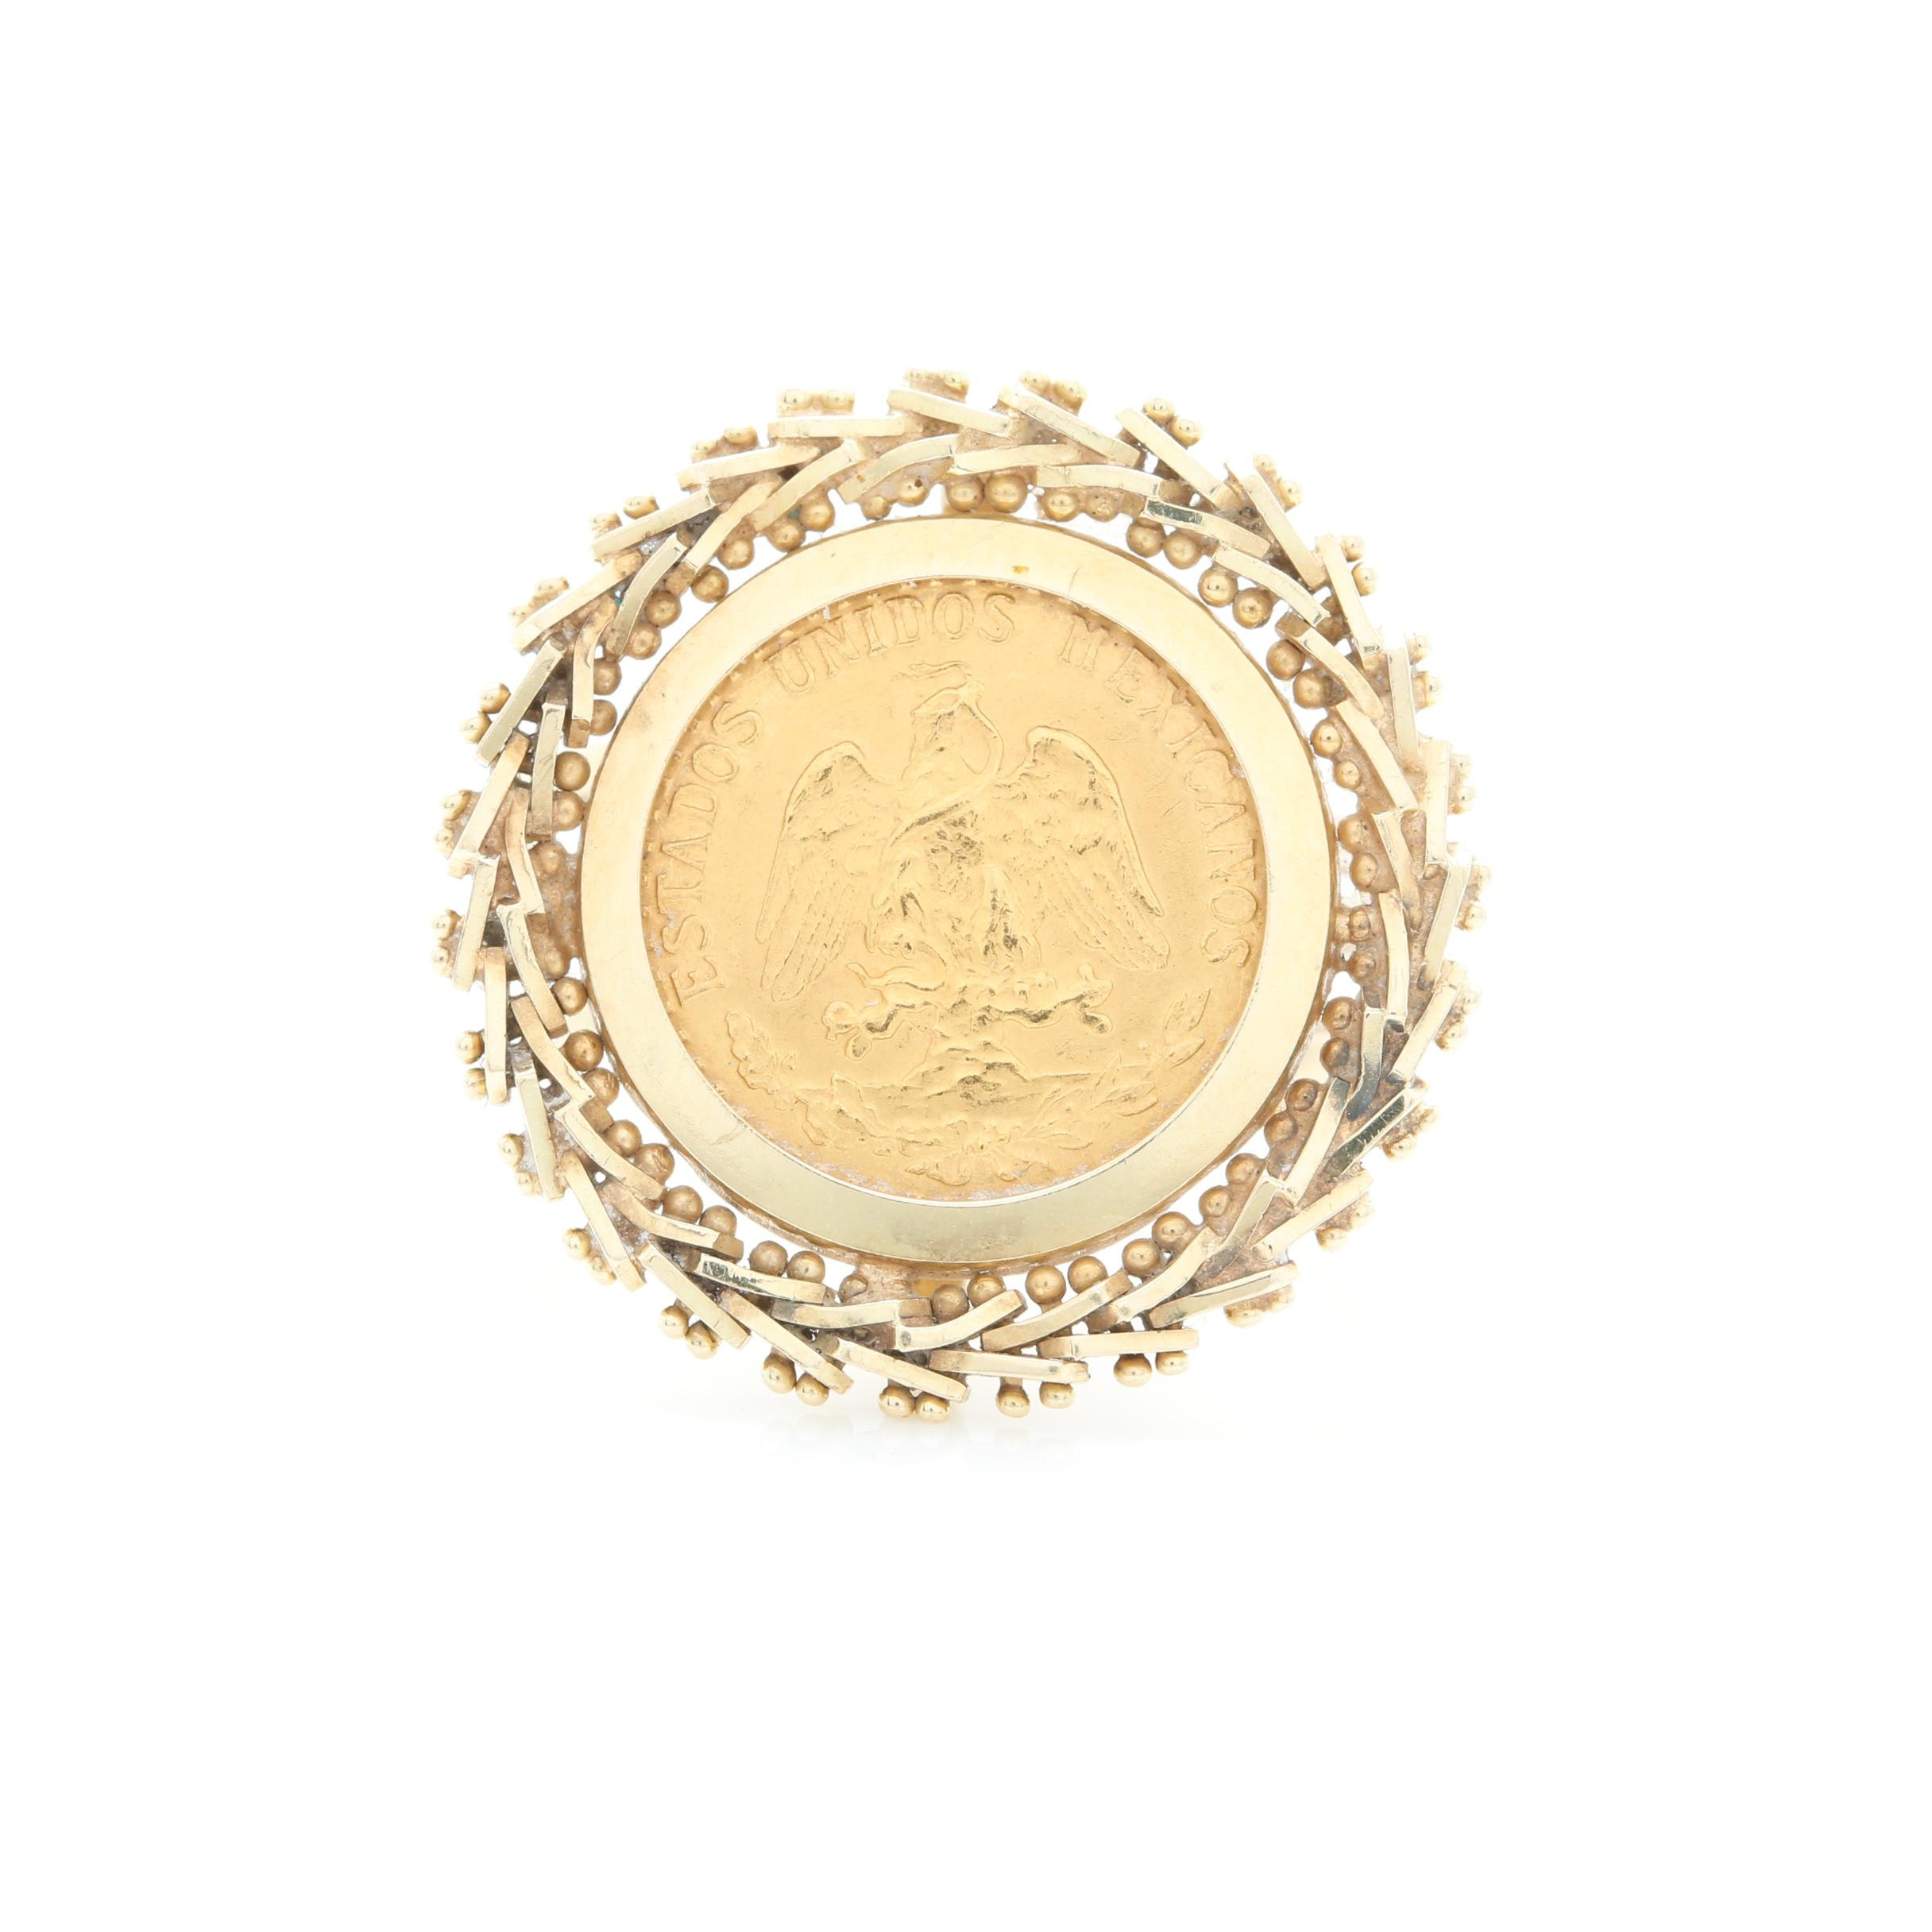 1945 (Restrike) Mexico 2 Pesos 14K and 21K Yellow Gold Coin Ring